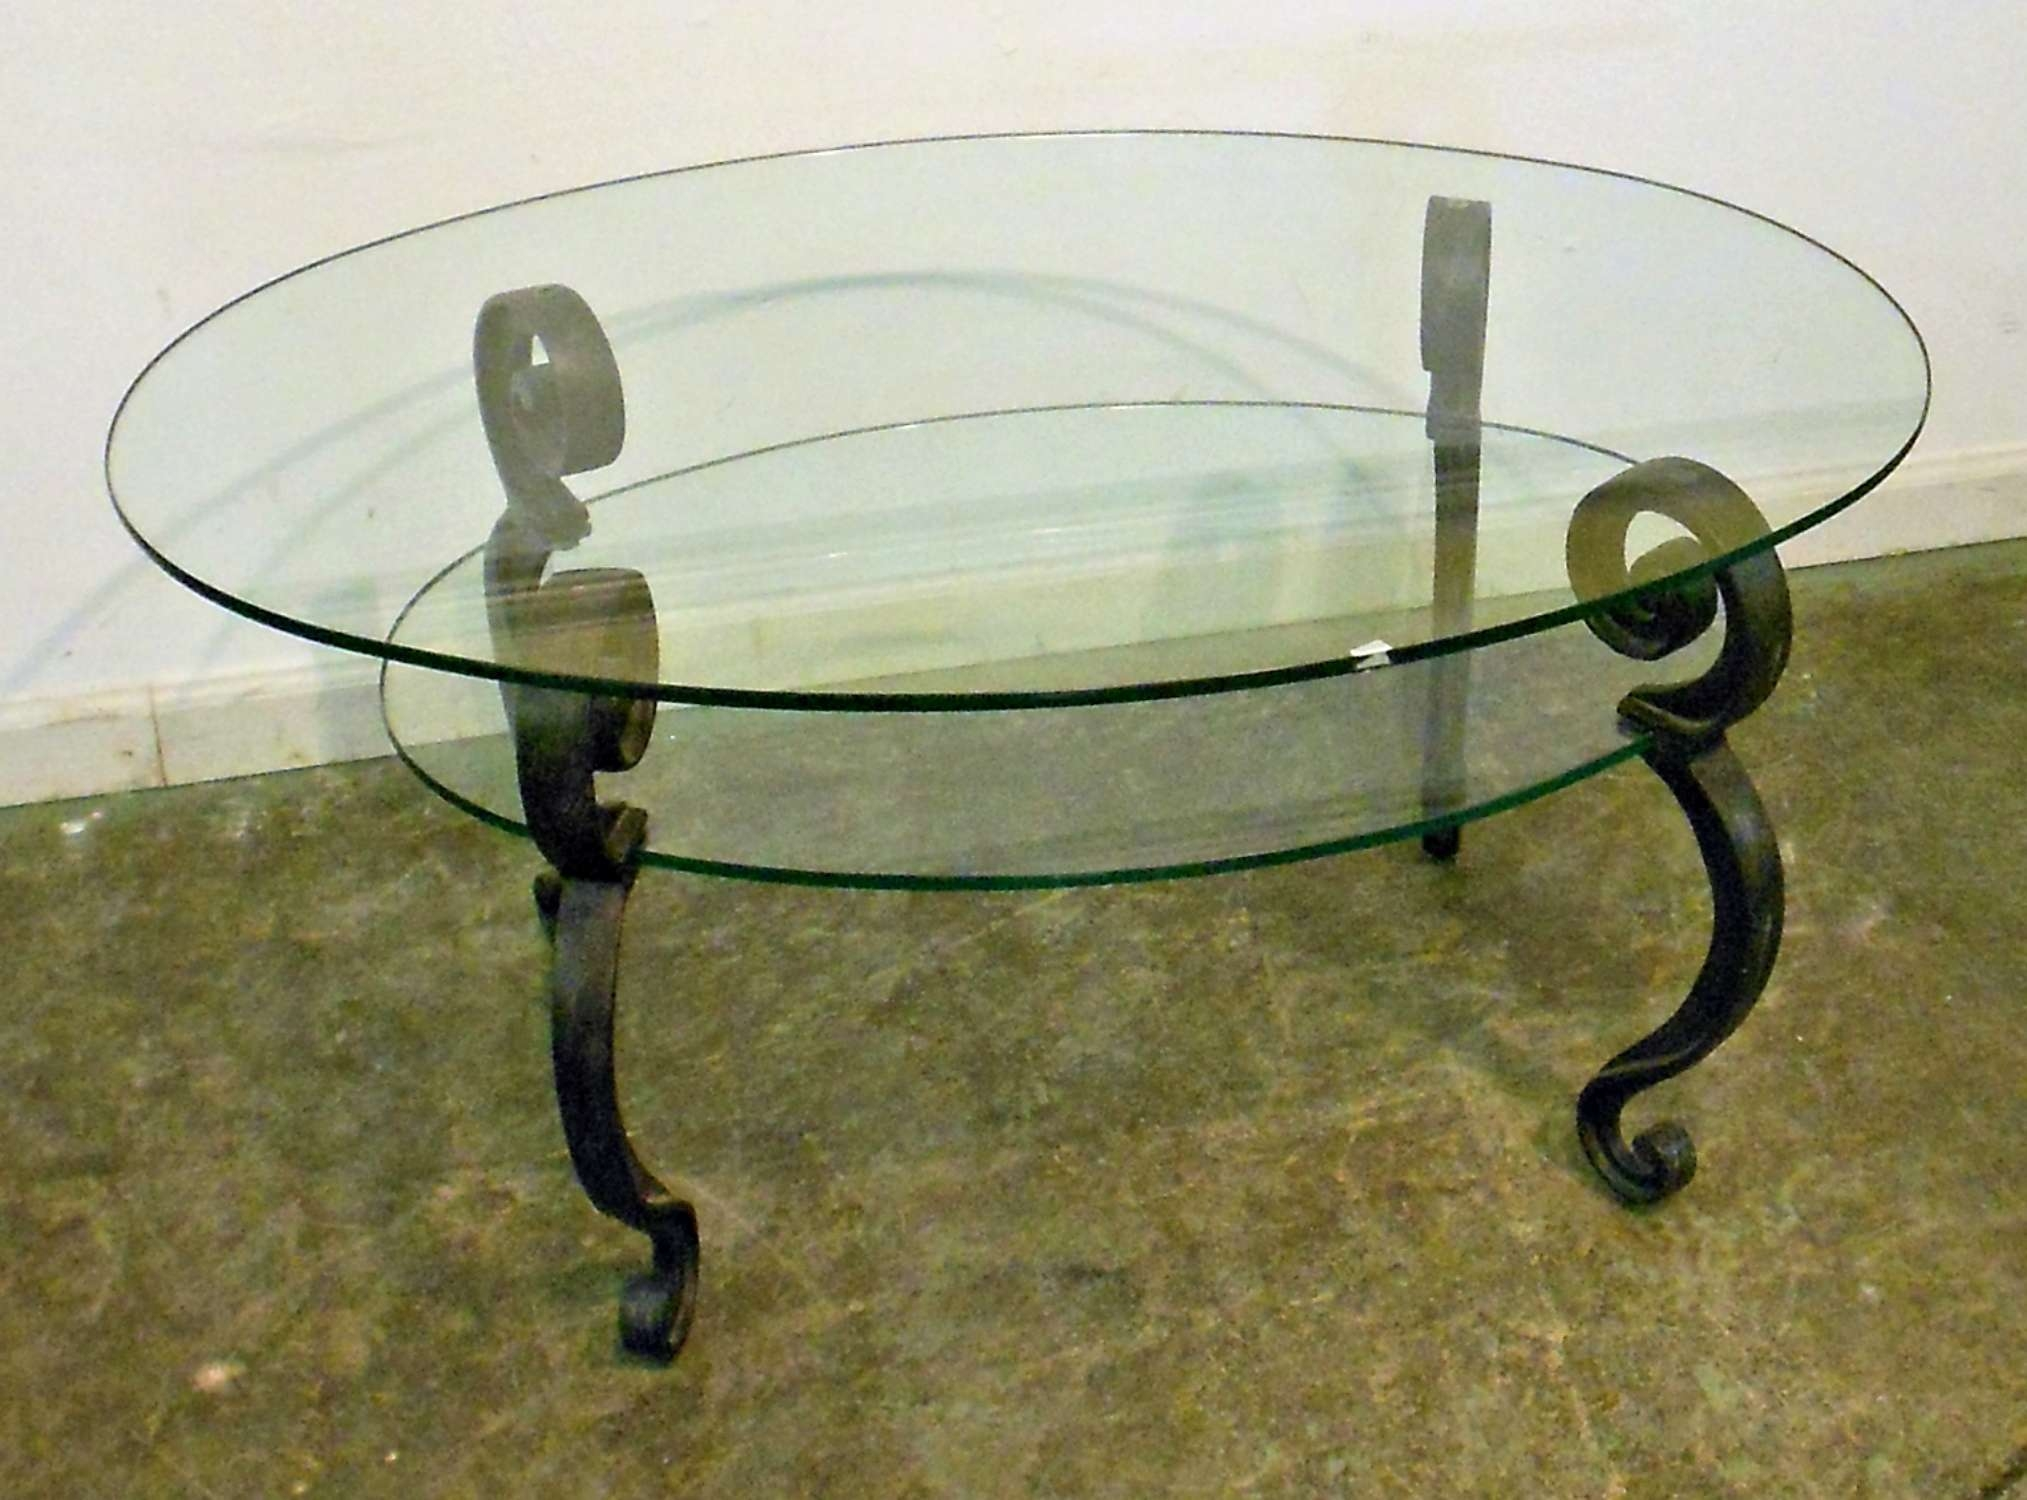 2018 Metal Oval Coffee Tables Pertaining To Vintage Glass Top Coffee Table With Black Metal Legs And Shelves (View 3 of 20)